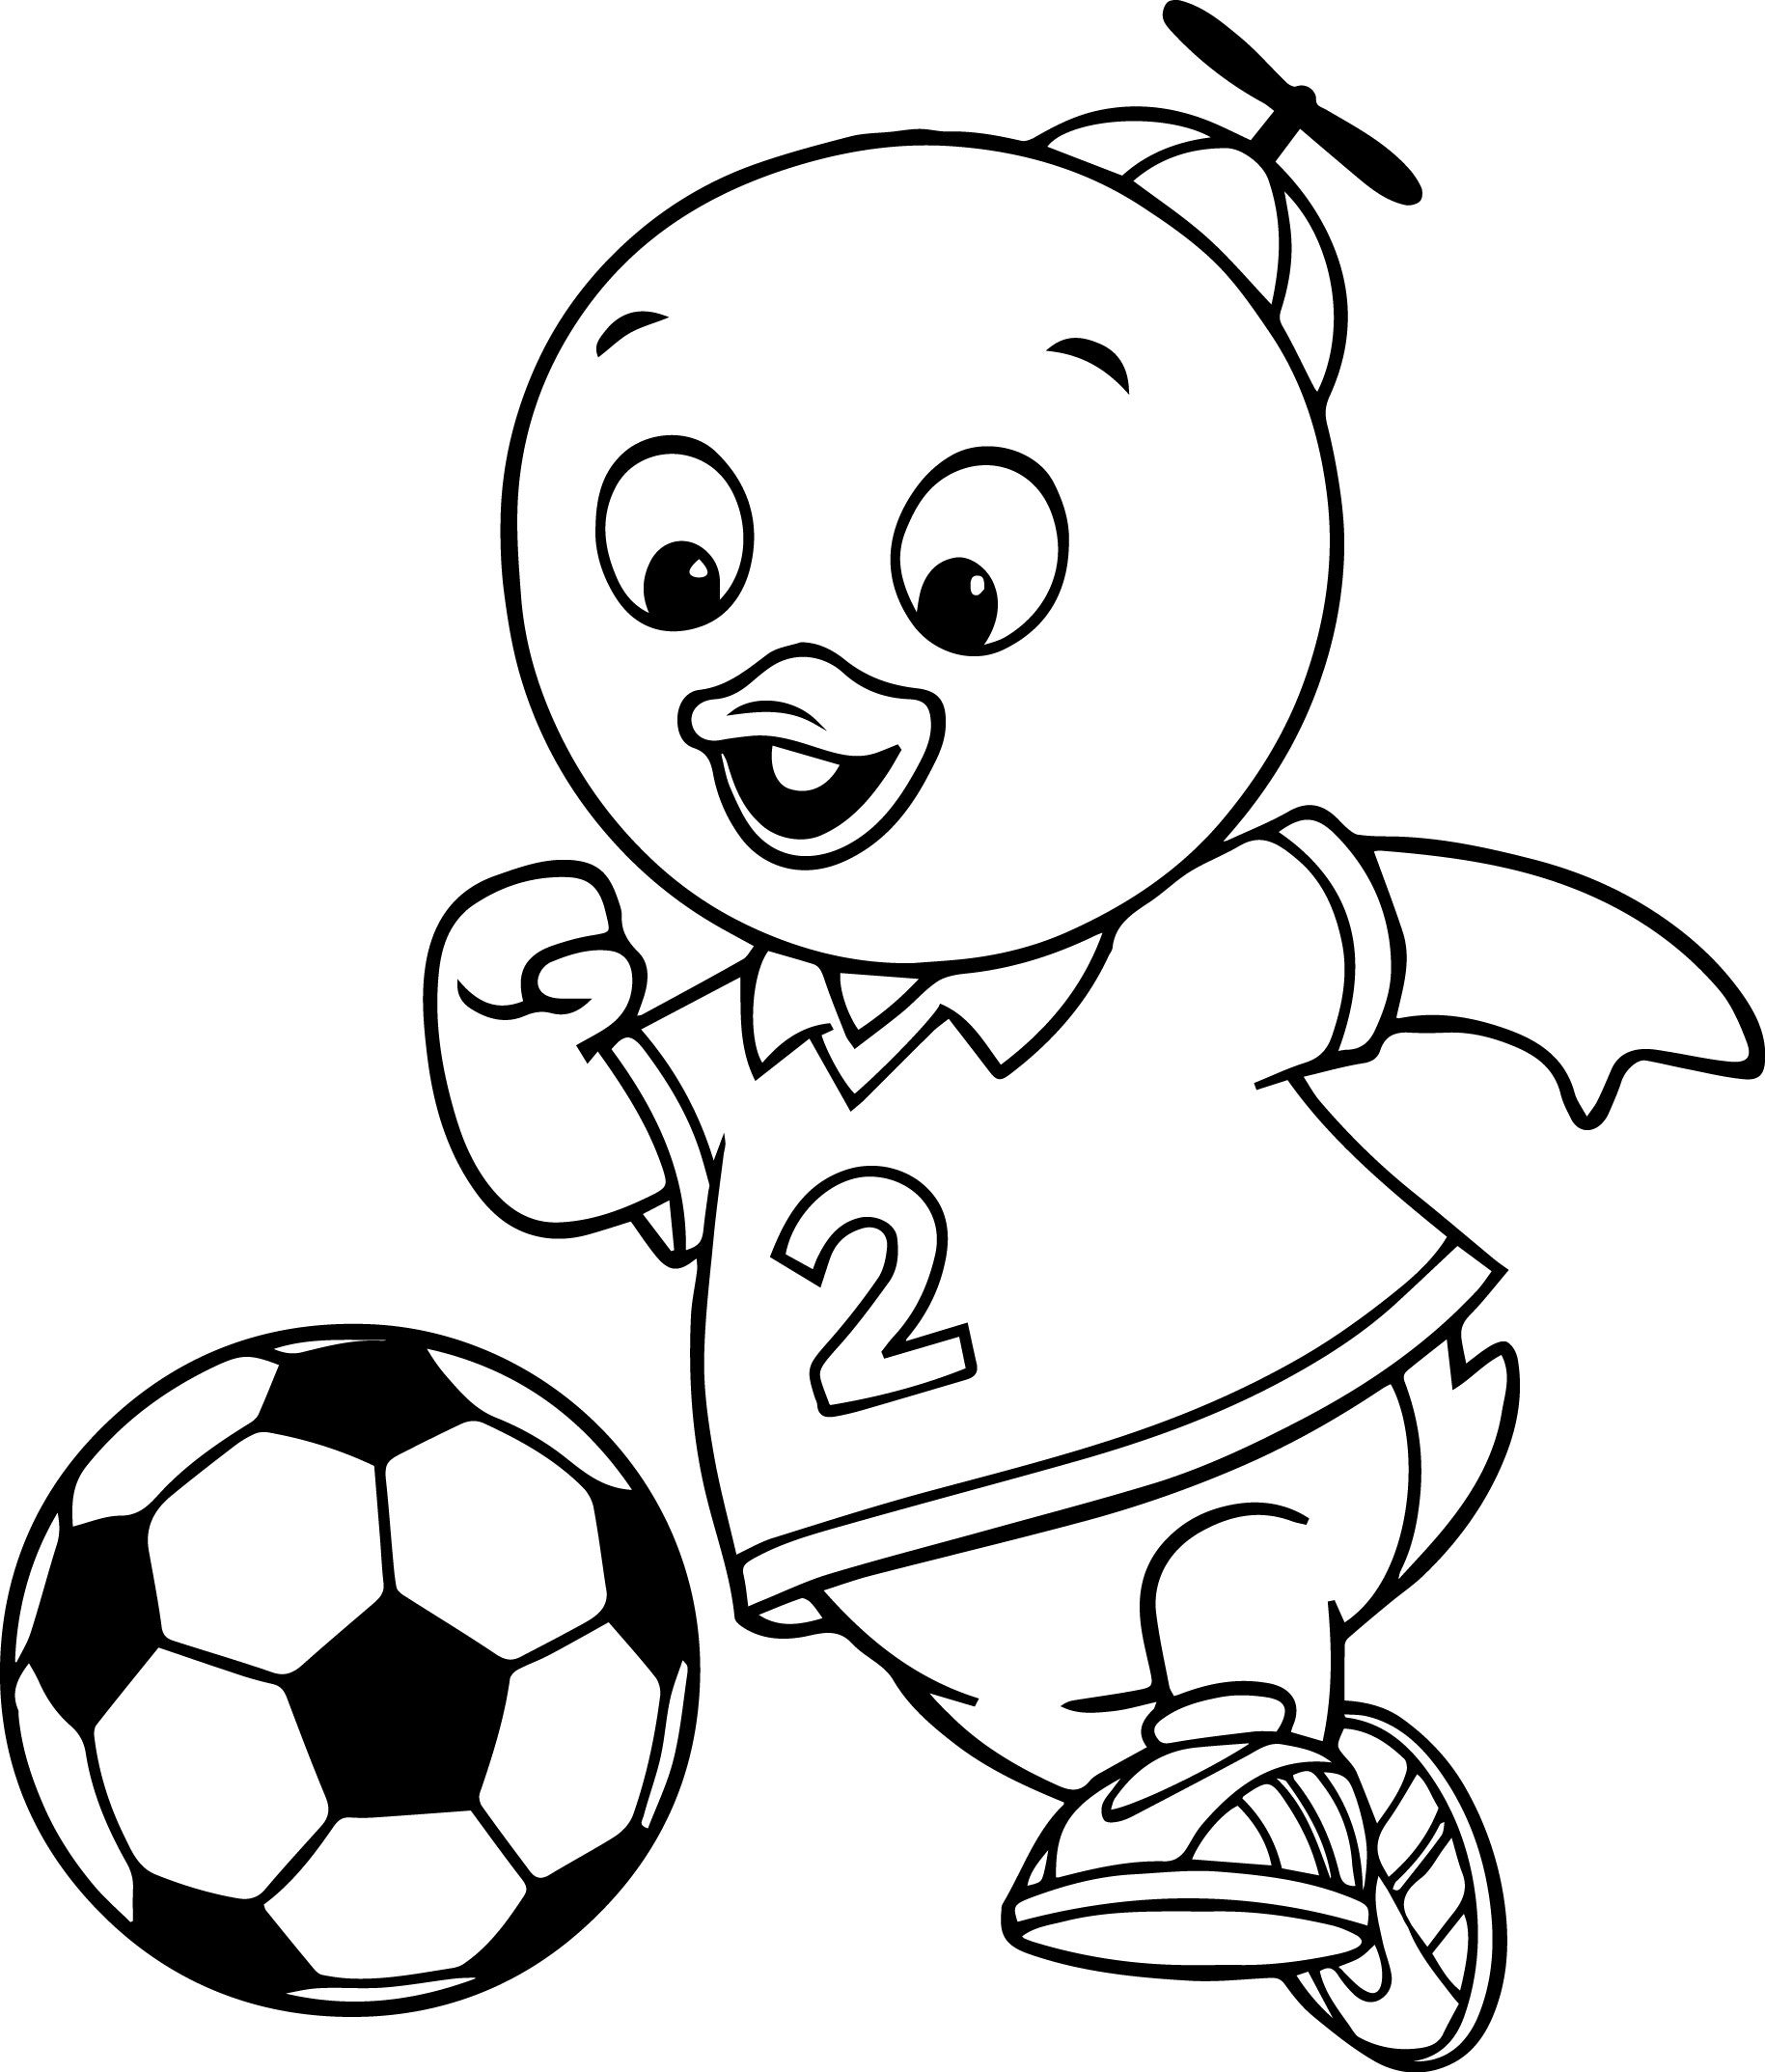 1829x2147 Fun Soccer Coloring Pages For Kids Printable Coloringstar